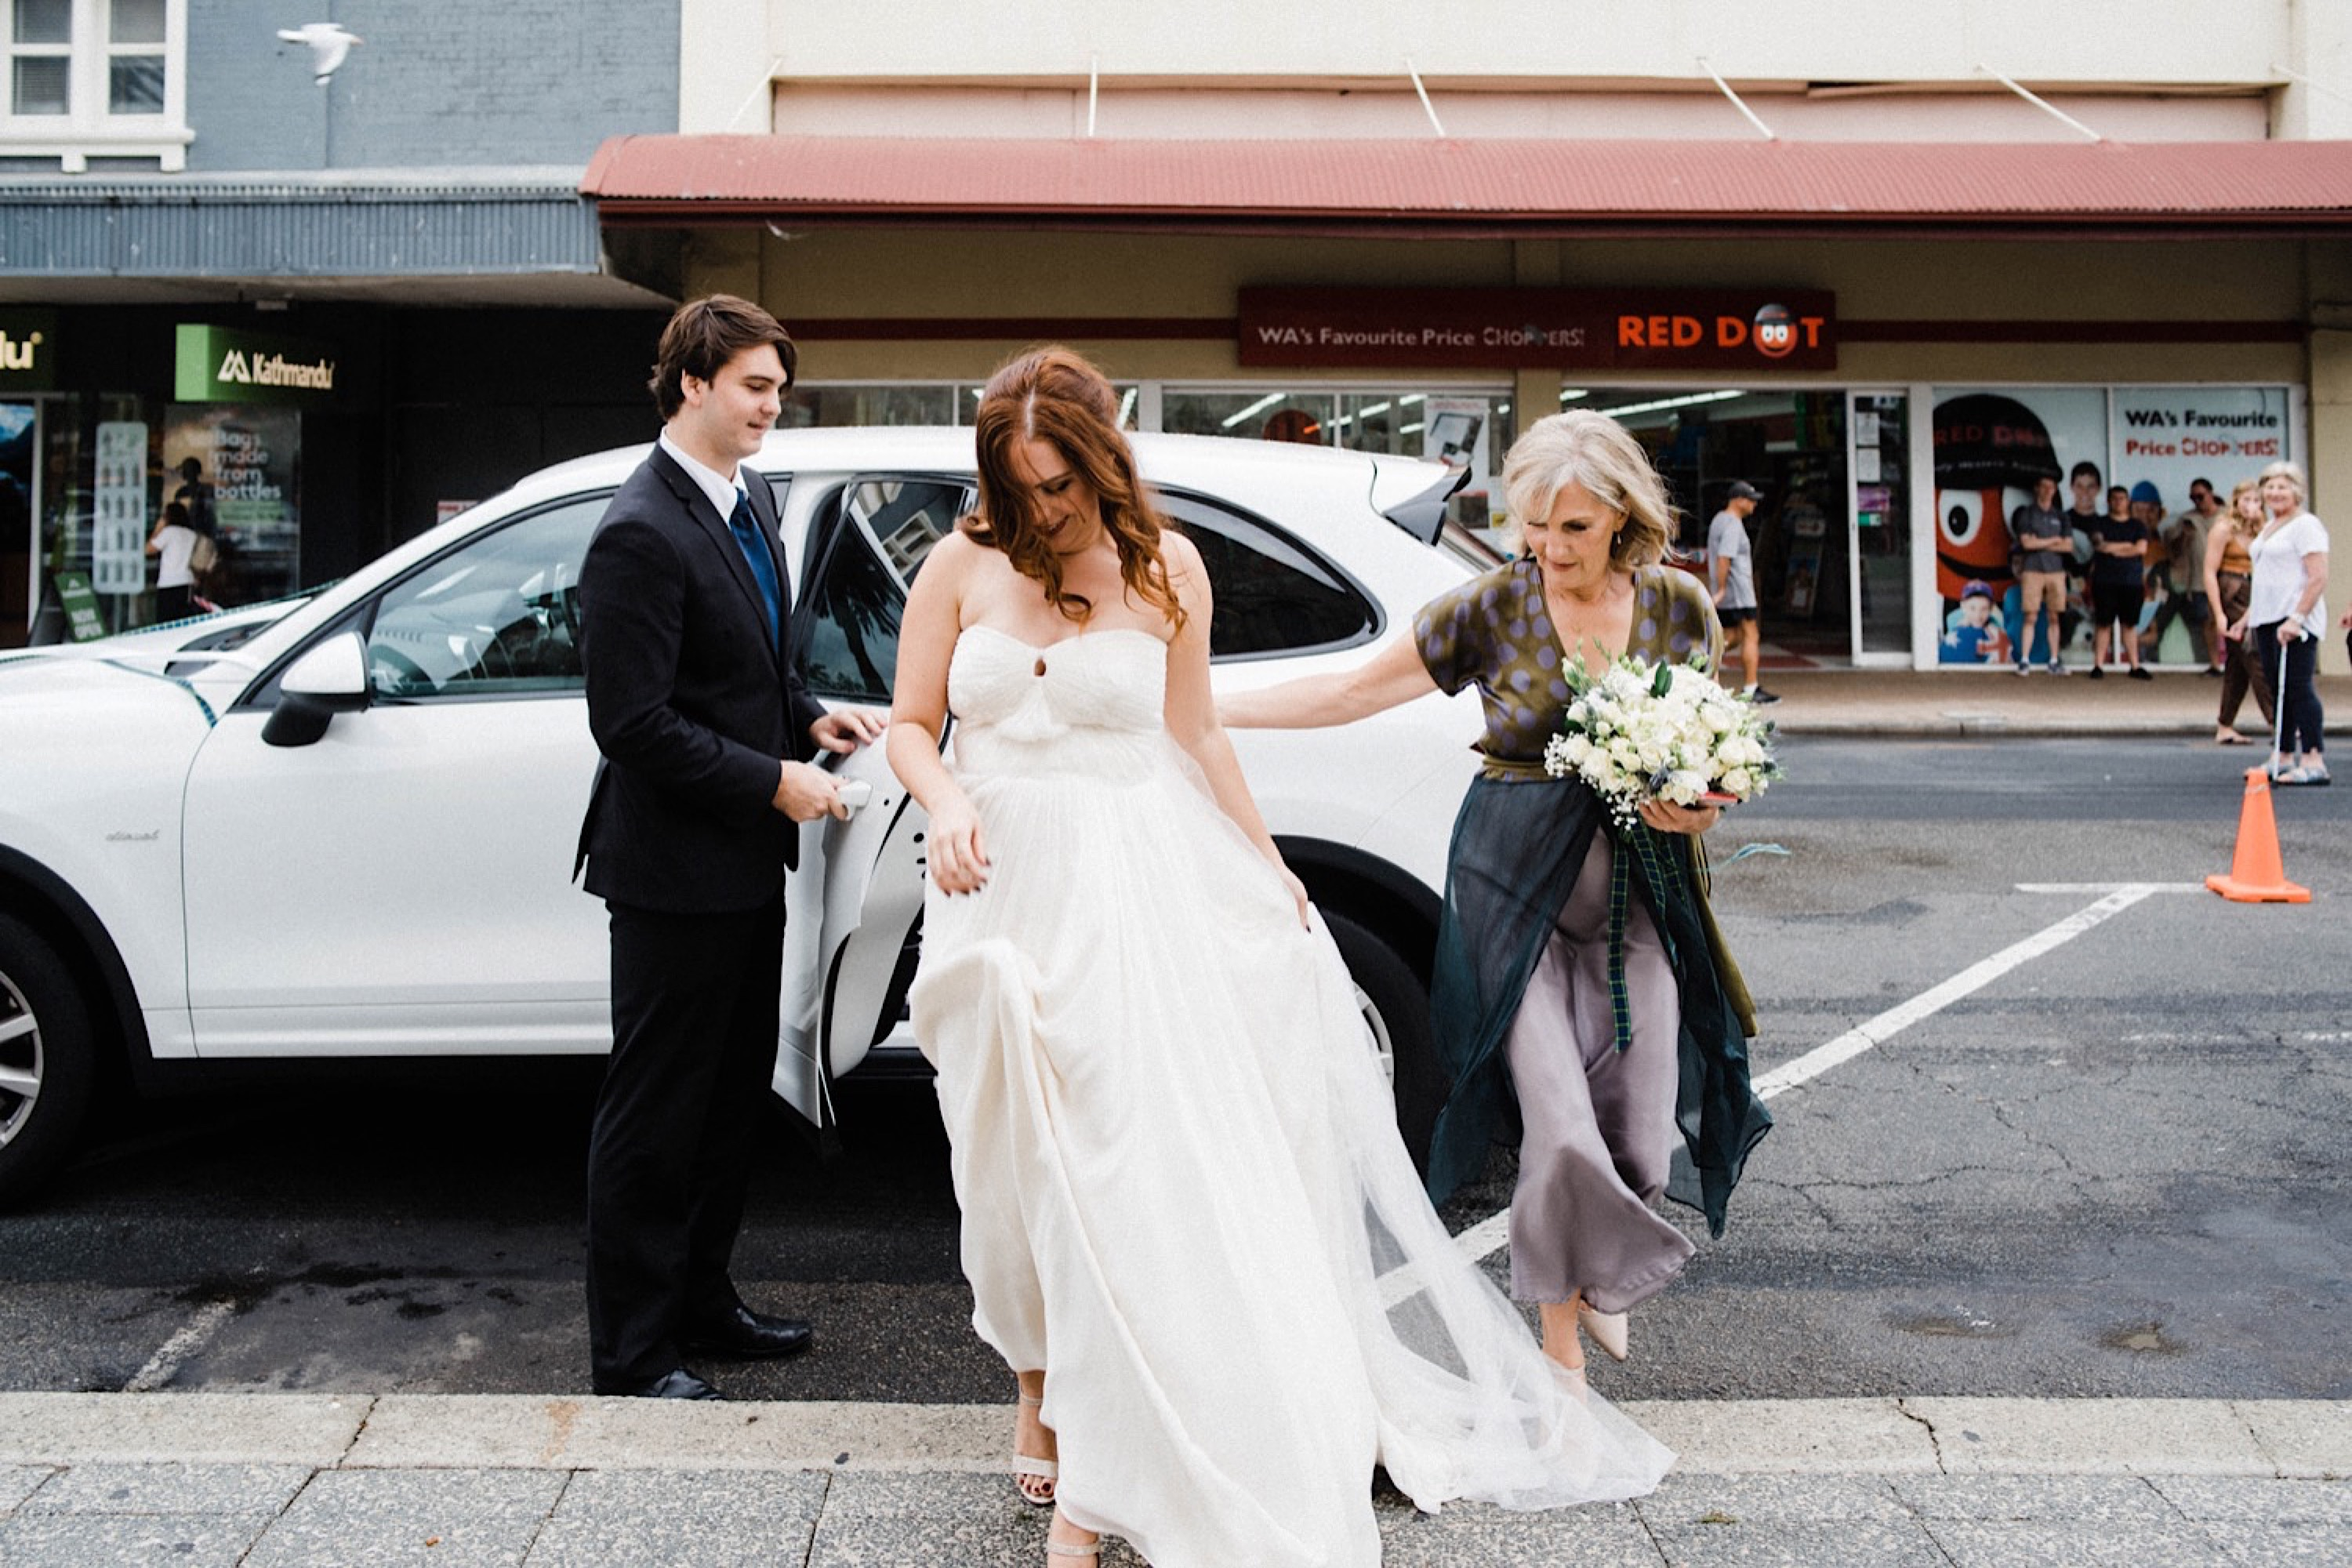 A candid wedding photo of the bride stepping out of the car, after arriving at the ceremony, with the help of her Mum and brother.